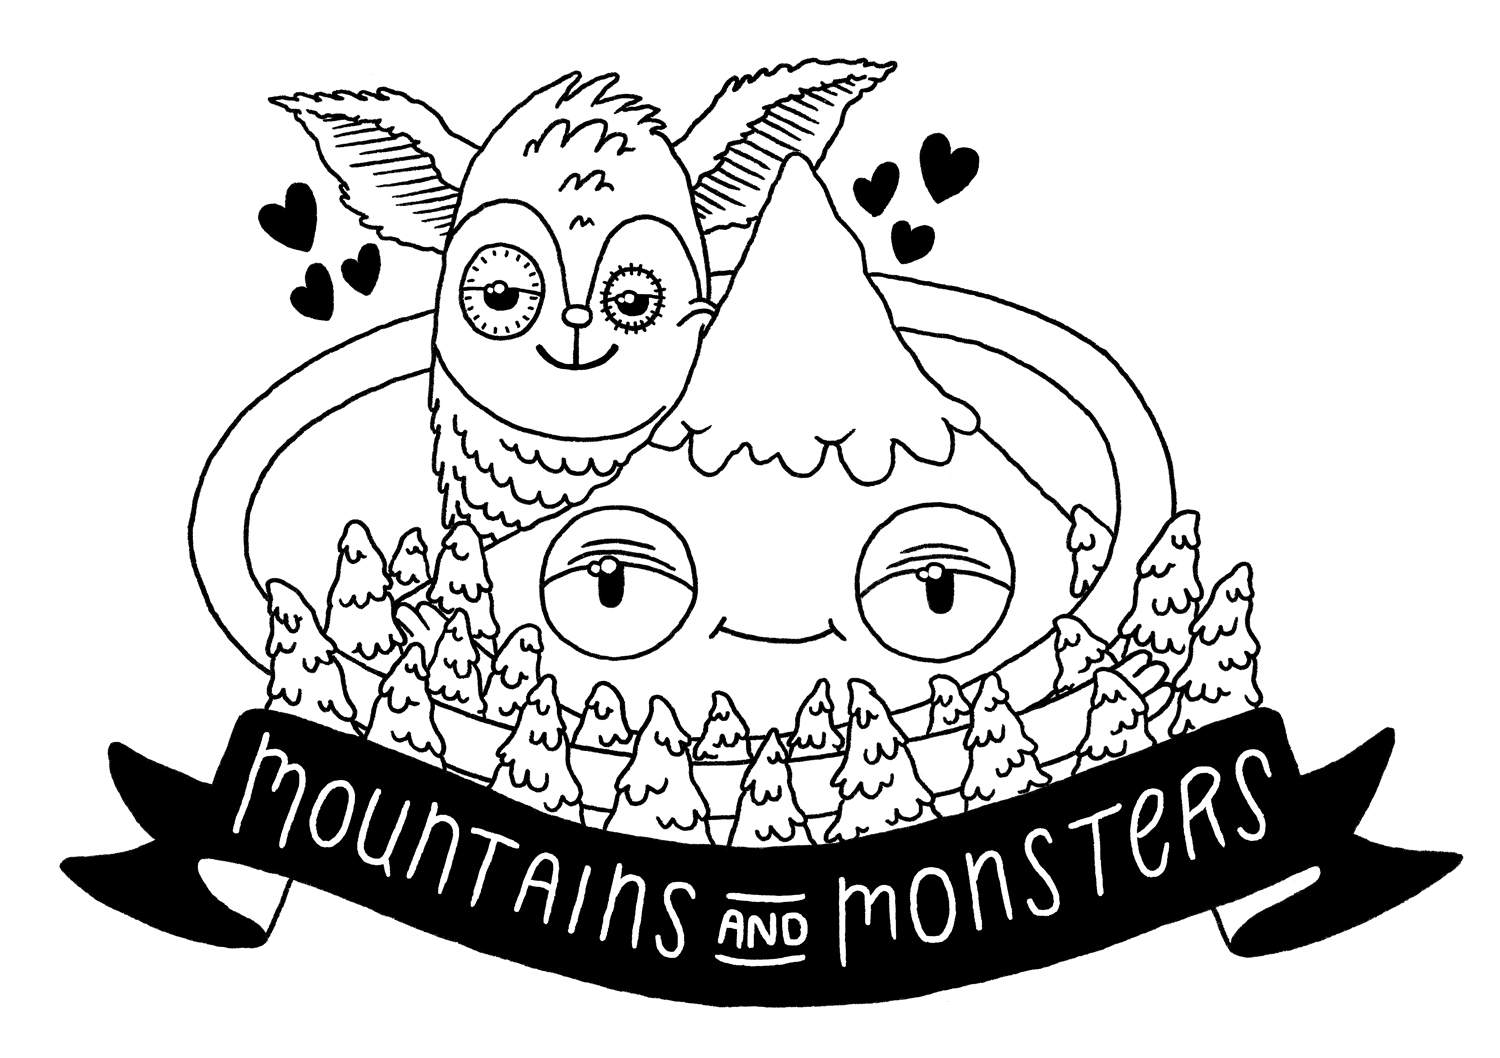 MOUNTAINS AND MONSTERS